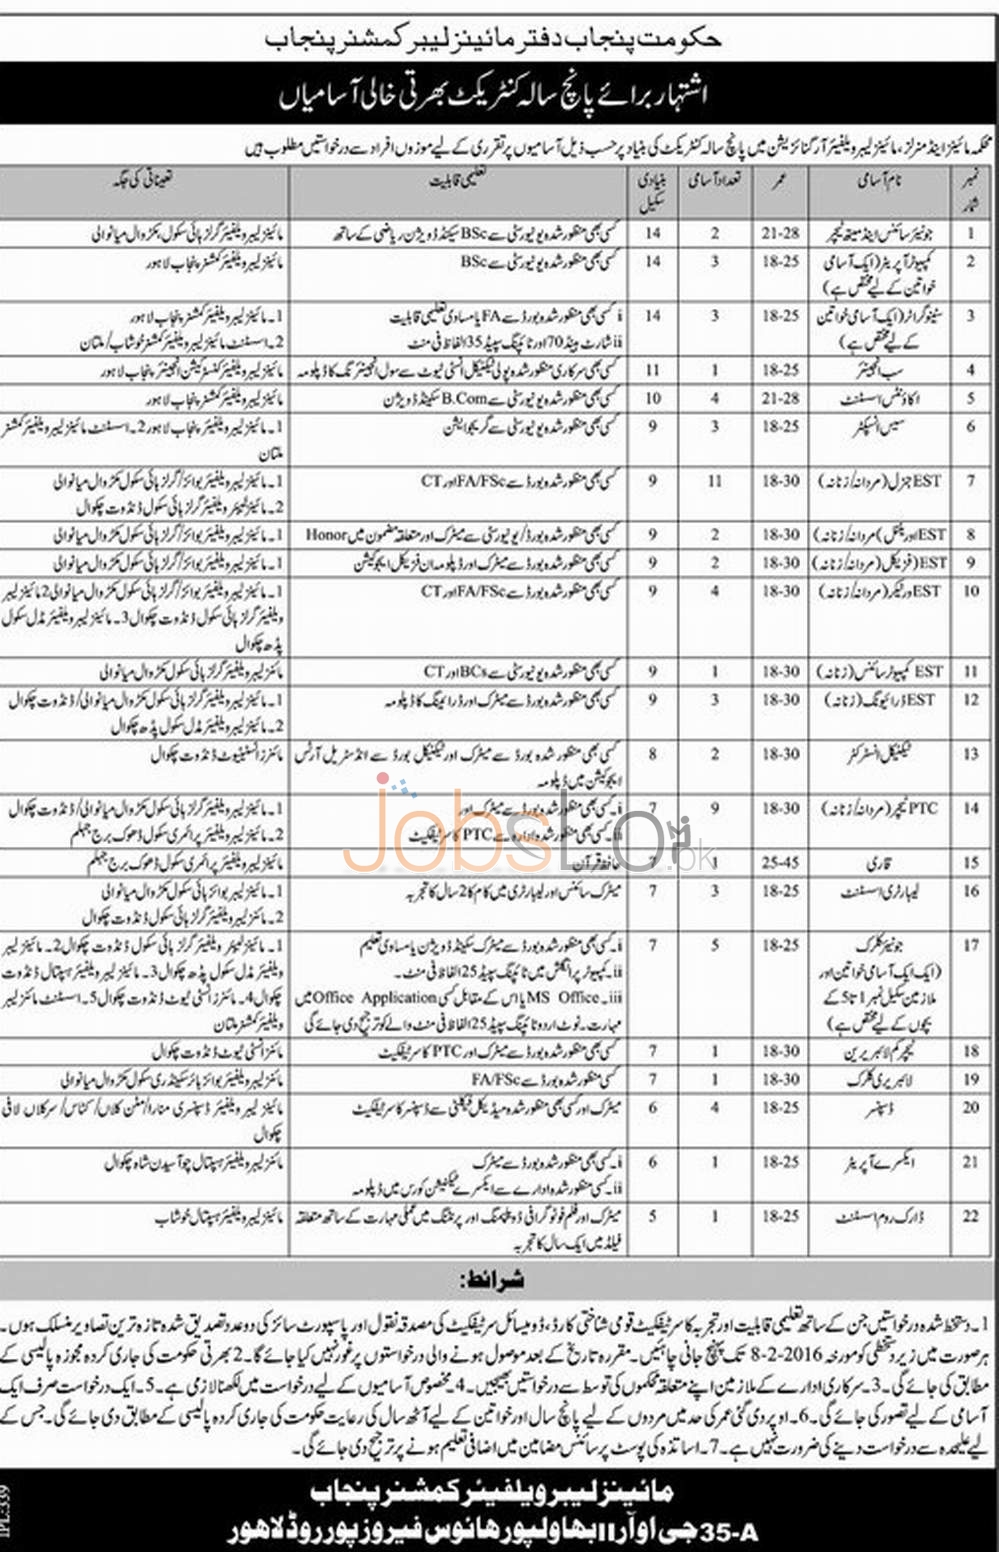 Recruitment Offer in Mines Labour Commission Punjab Govt of Punjab 2016